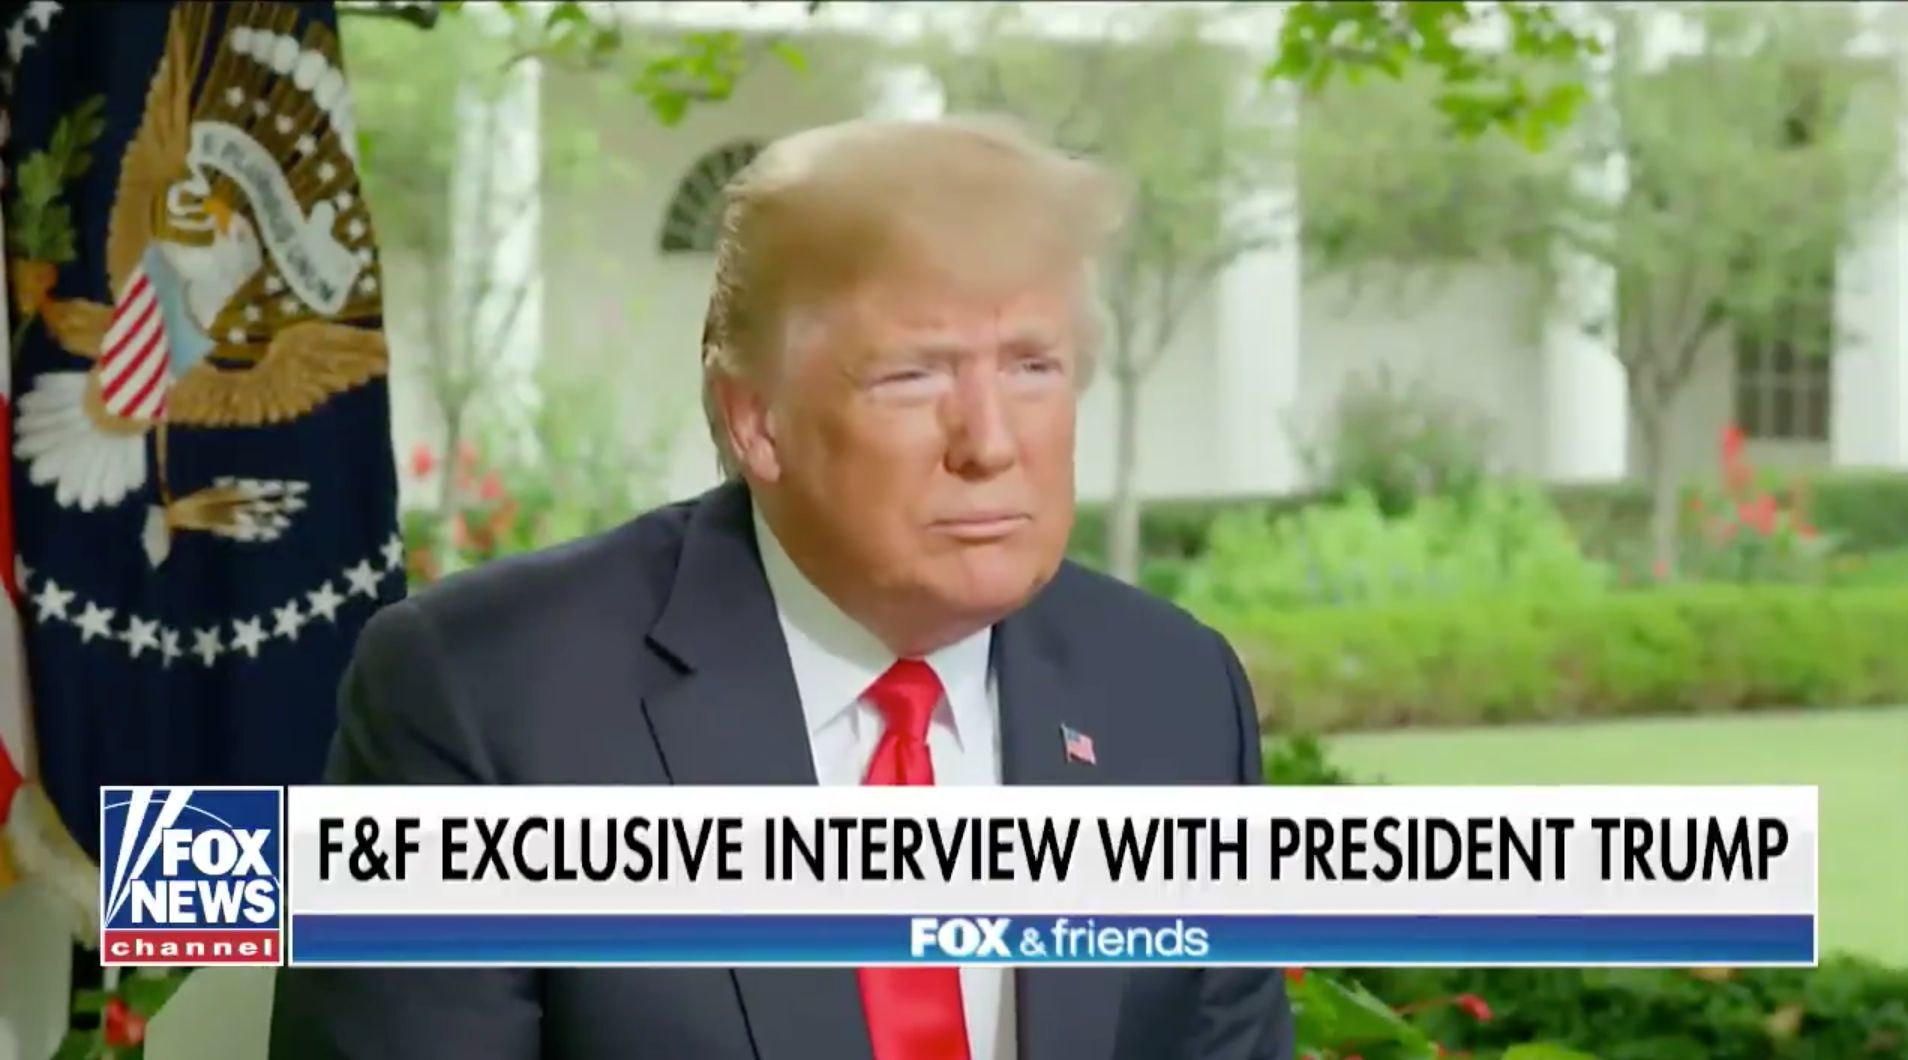 The Fox News Interview With Donald Trump Was Even More Batsh*t Than You Hoped